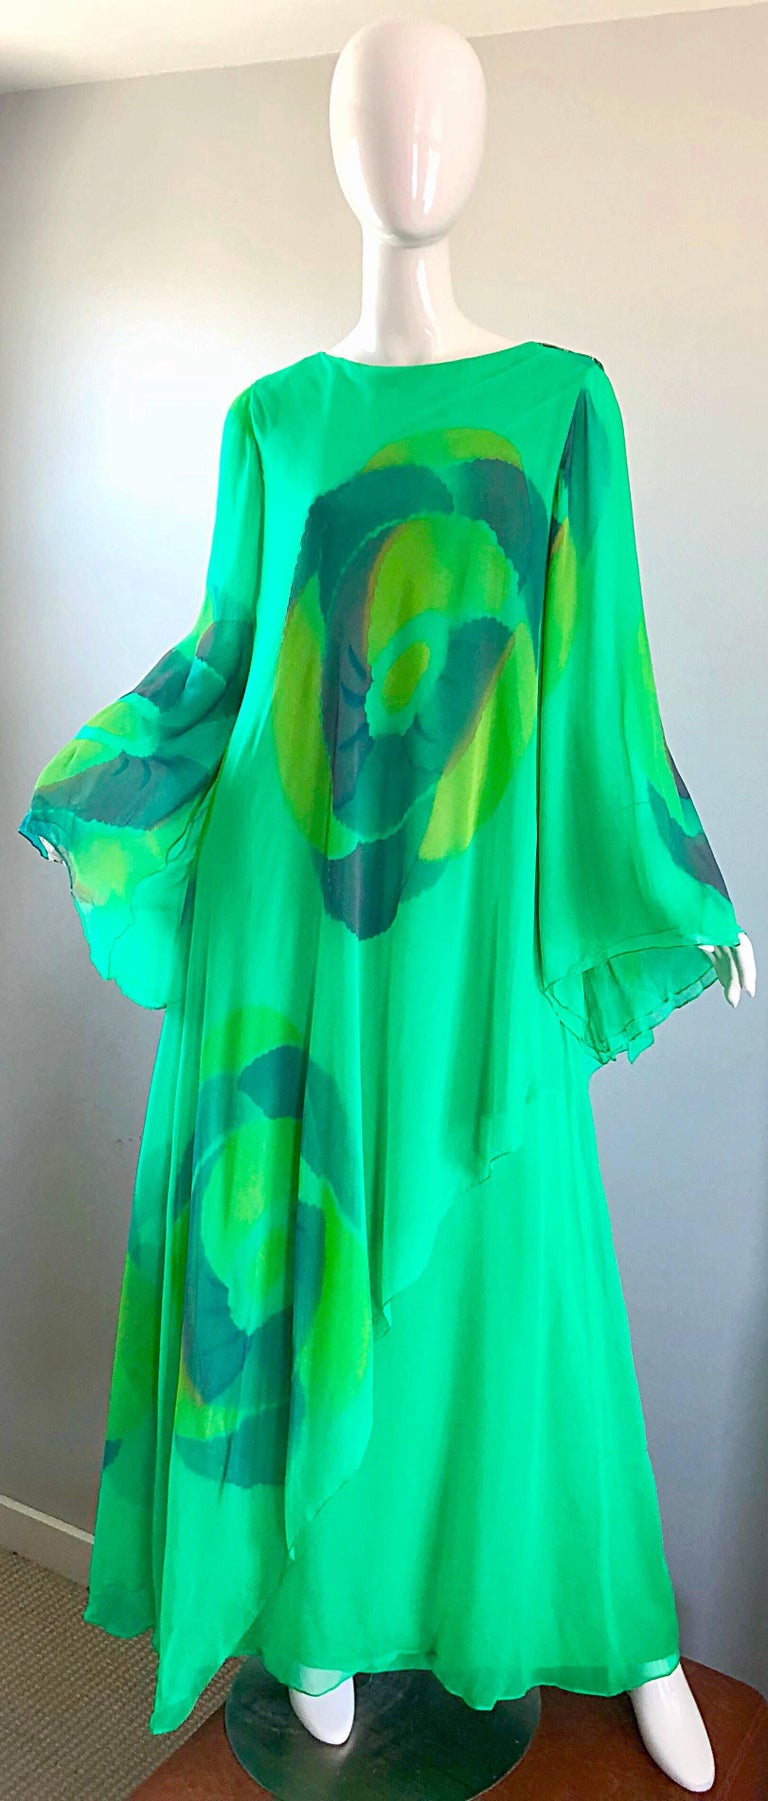 Absolutely stunning 1970s TRAVILLIA hand painted kelly green caftan gown! Features layers upon layers of the finest silk chiffon. Hand painted watercolor prints throughout the front, back and sleeves. Forgiving loose fit drapes the body